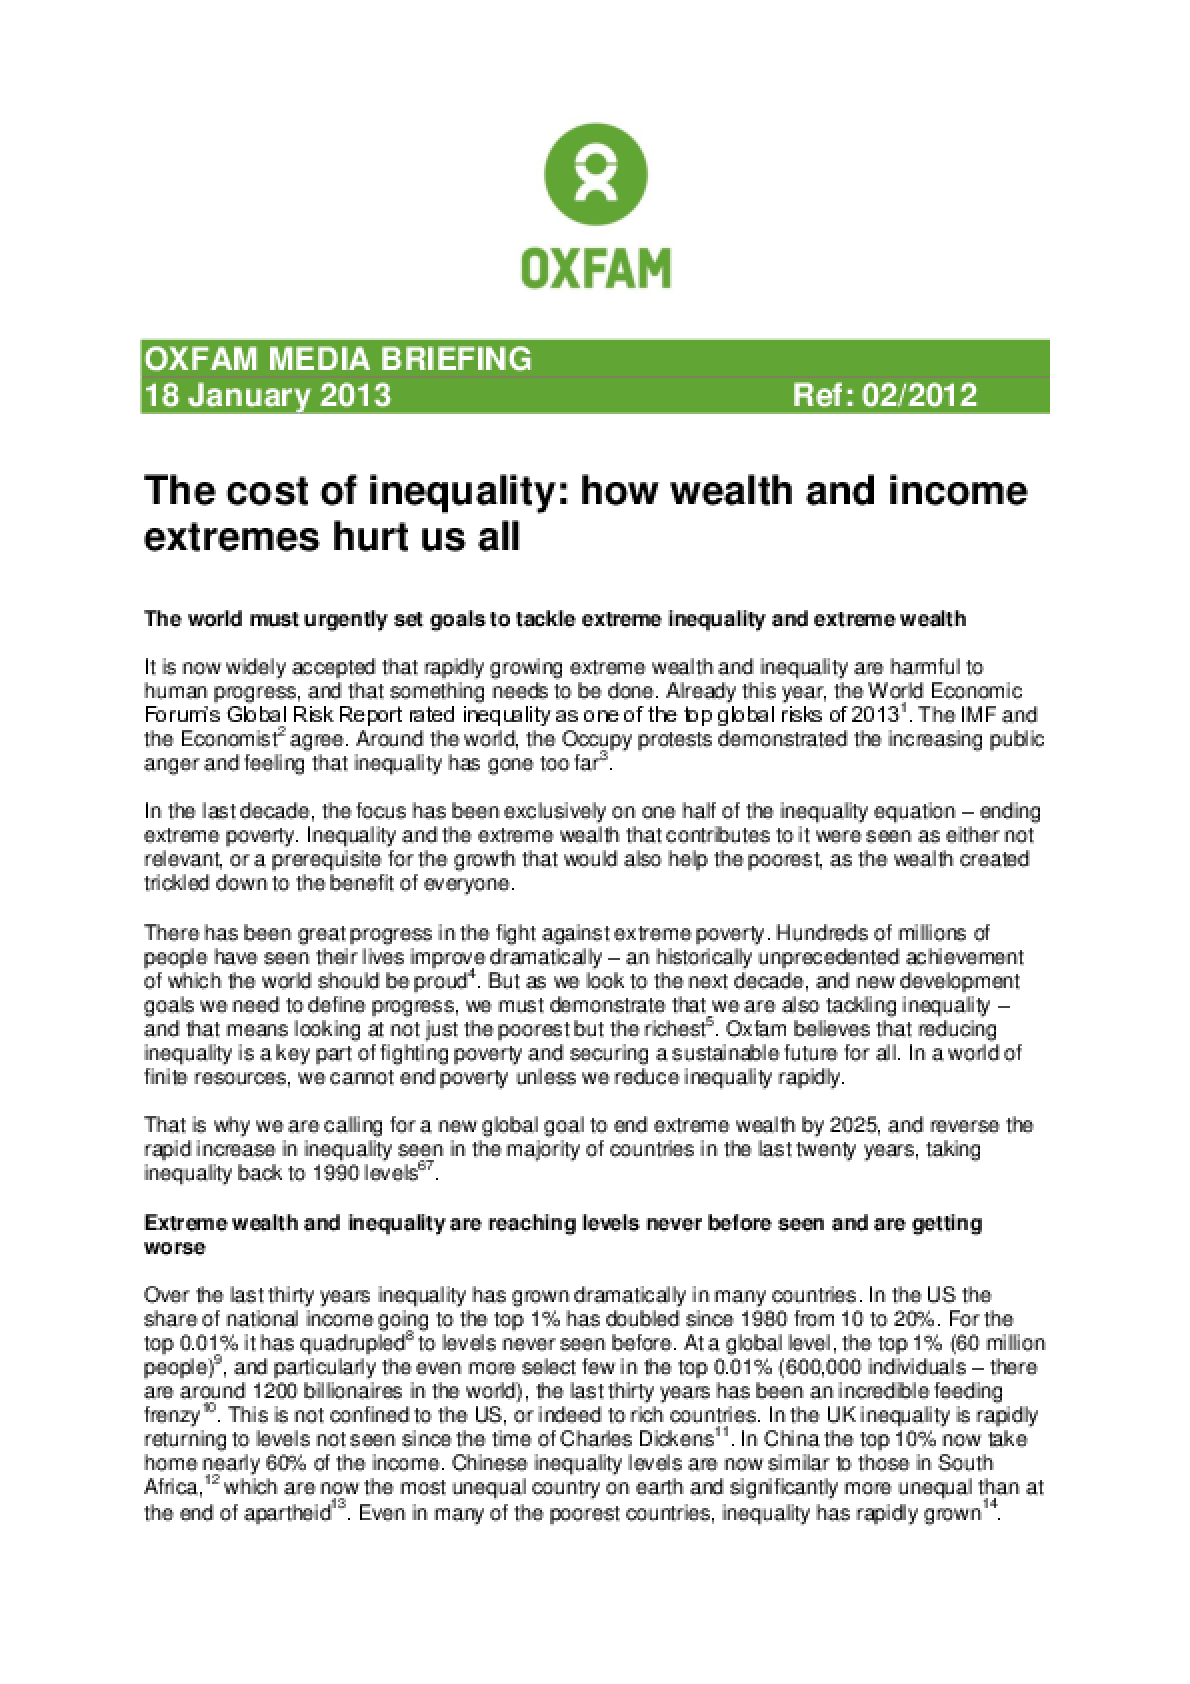 The Cost of Inequality: How wealth and income extremes hurt us all